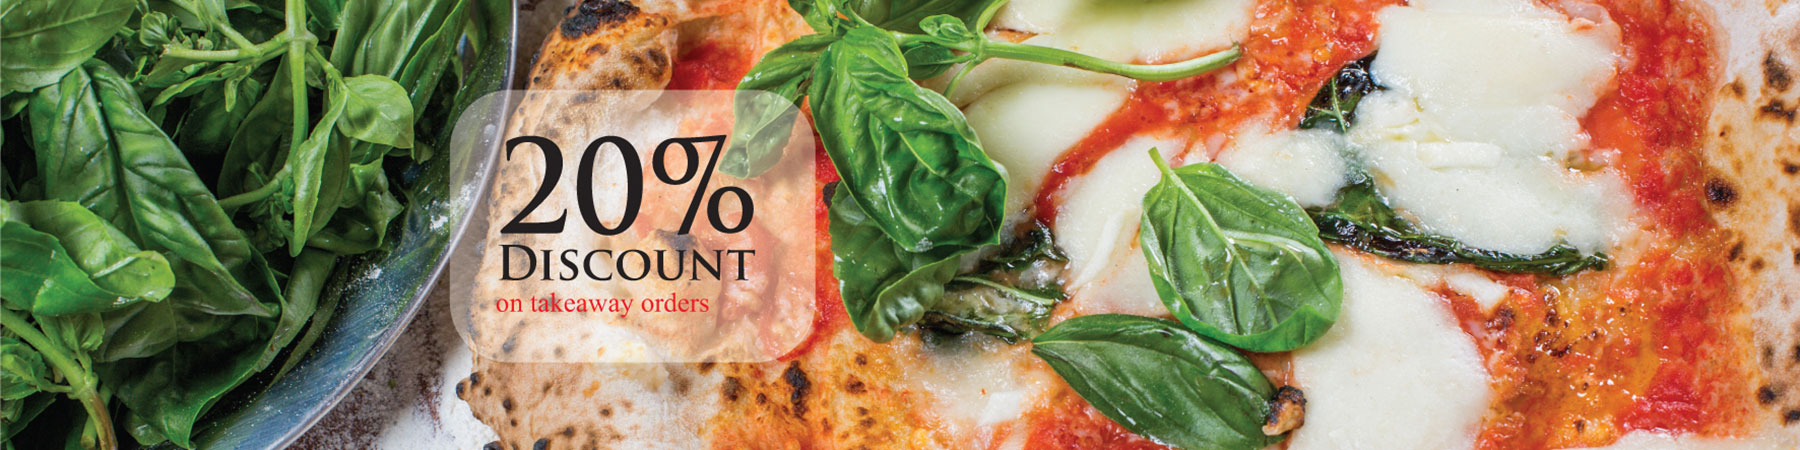 20% Discount at La Lupa Ristorante and Pizzeria in Poole